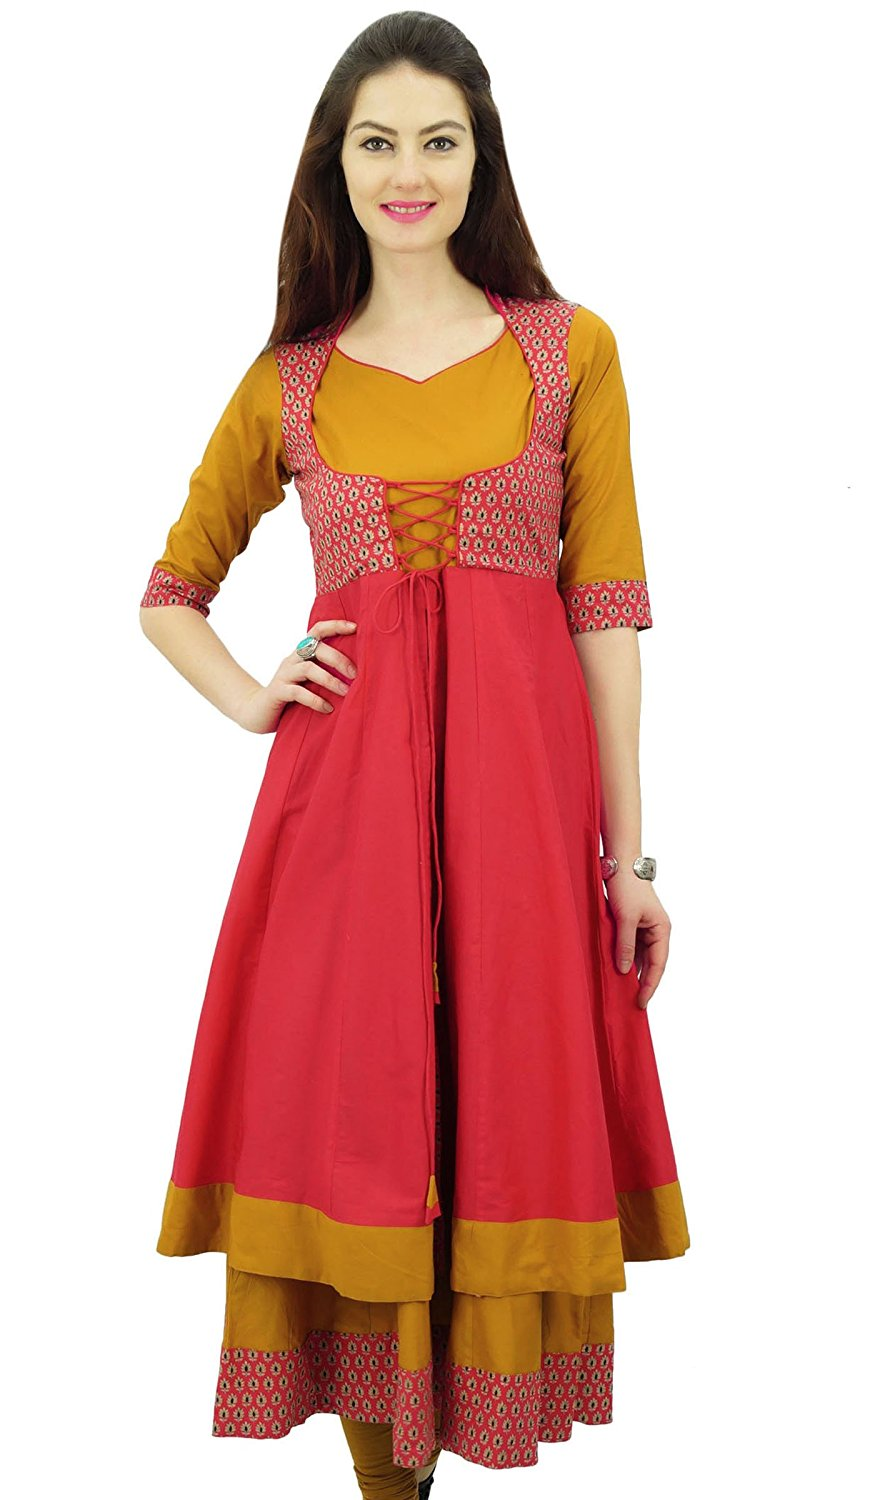 da678ed28c Get Quotations · Phagun Designer Double Layer Anarkali Kurti Dori Jacket  Style Indian Dress